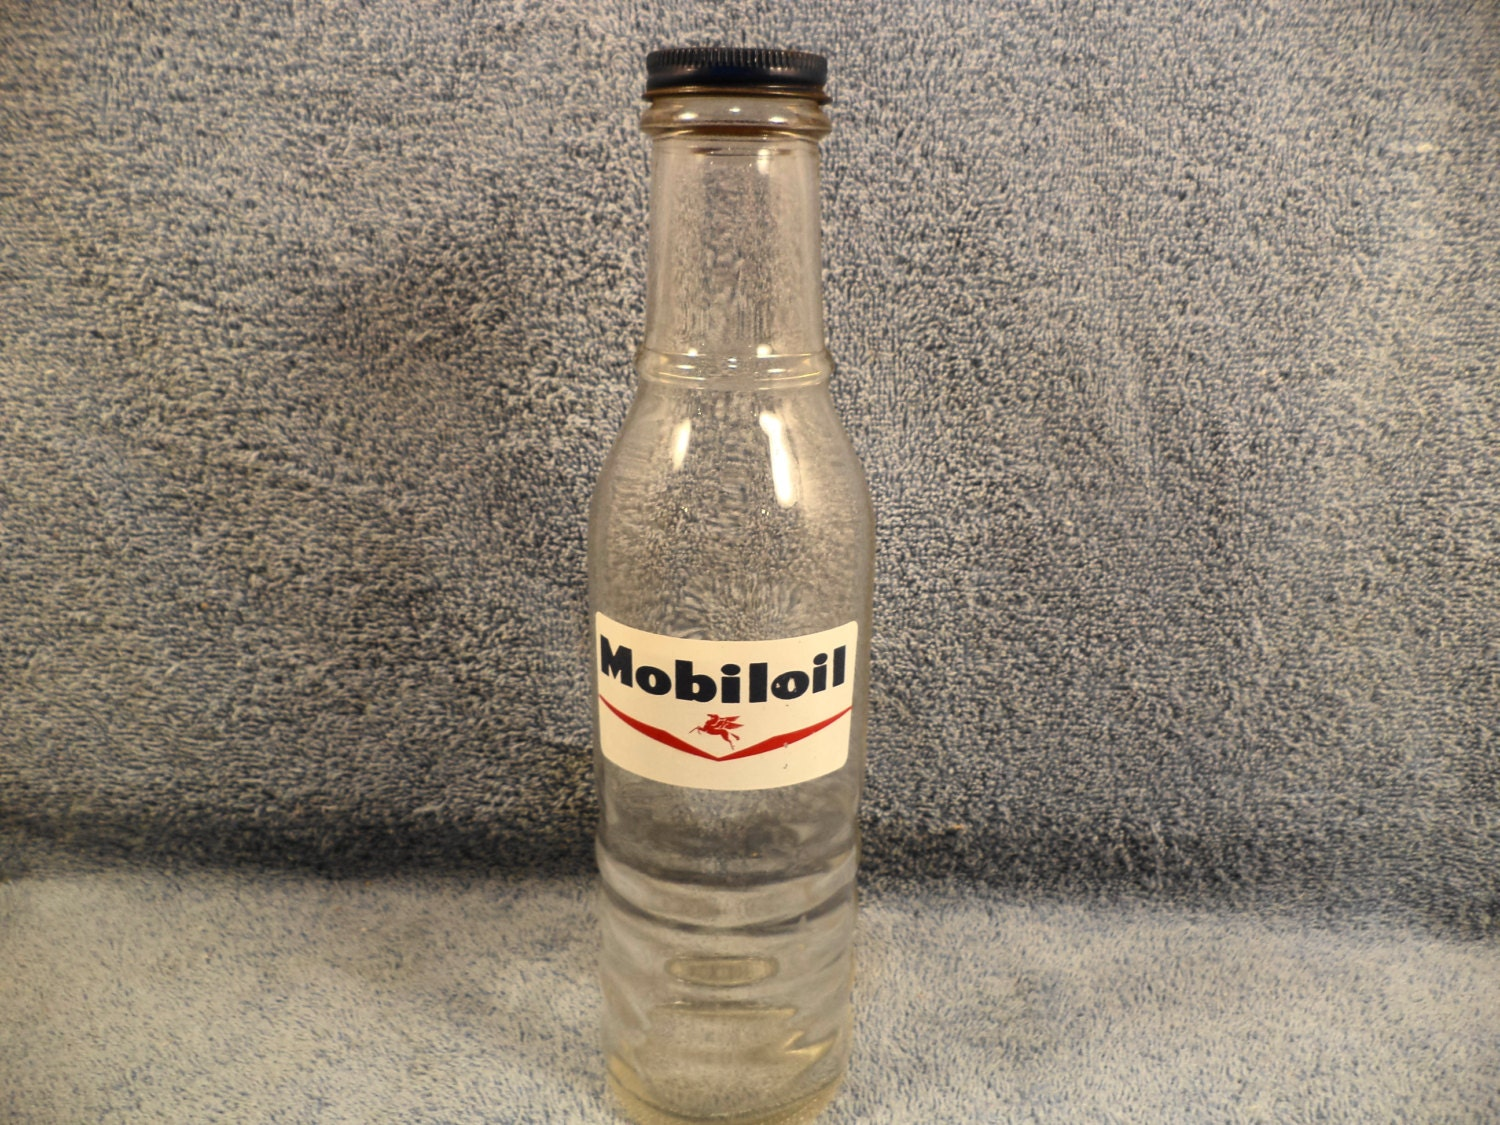 Mobil Mobiloil Glass 1 Pint Motor Oil Bottle With Painted